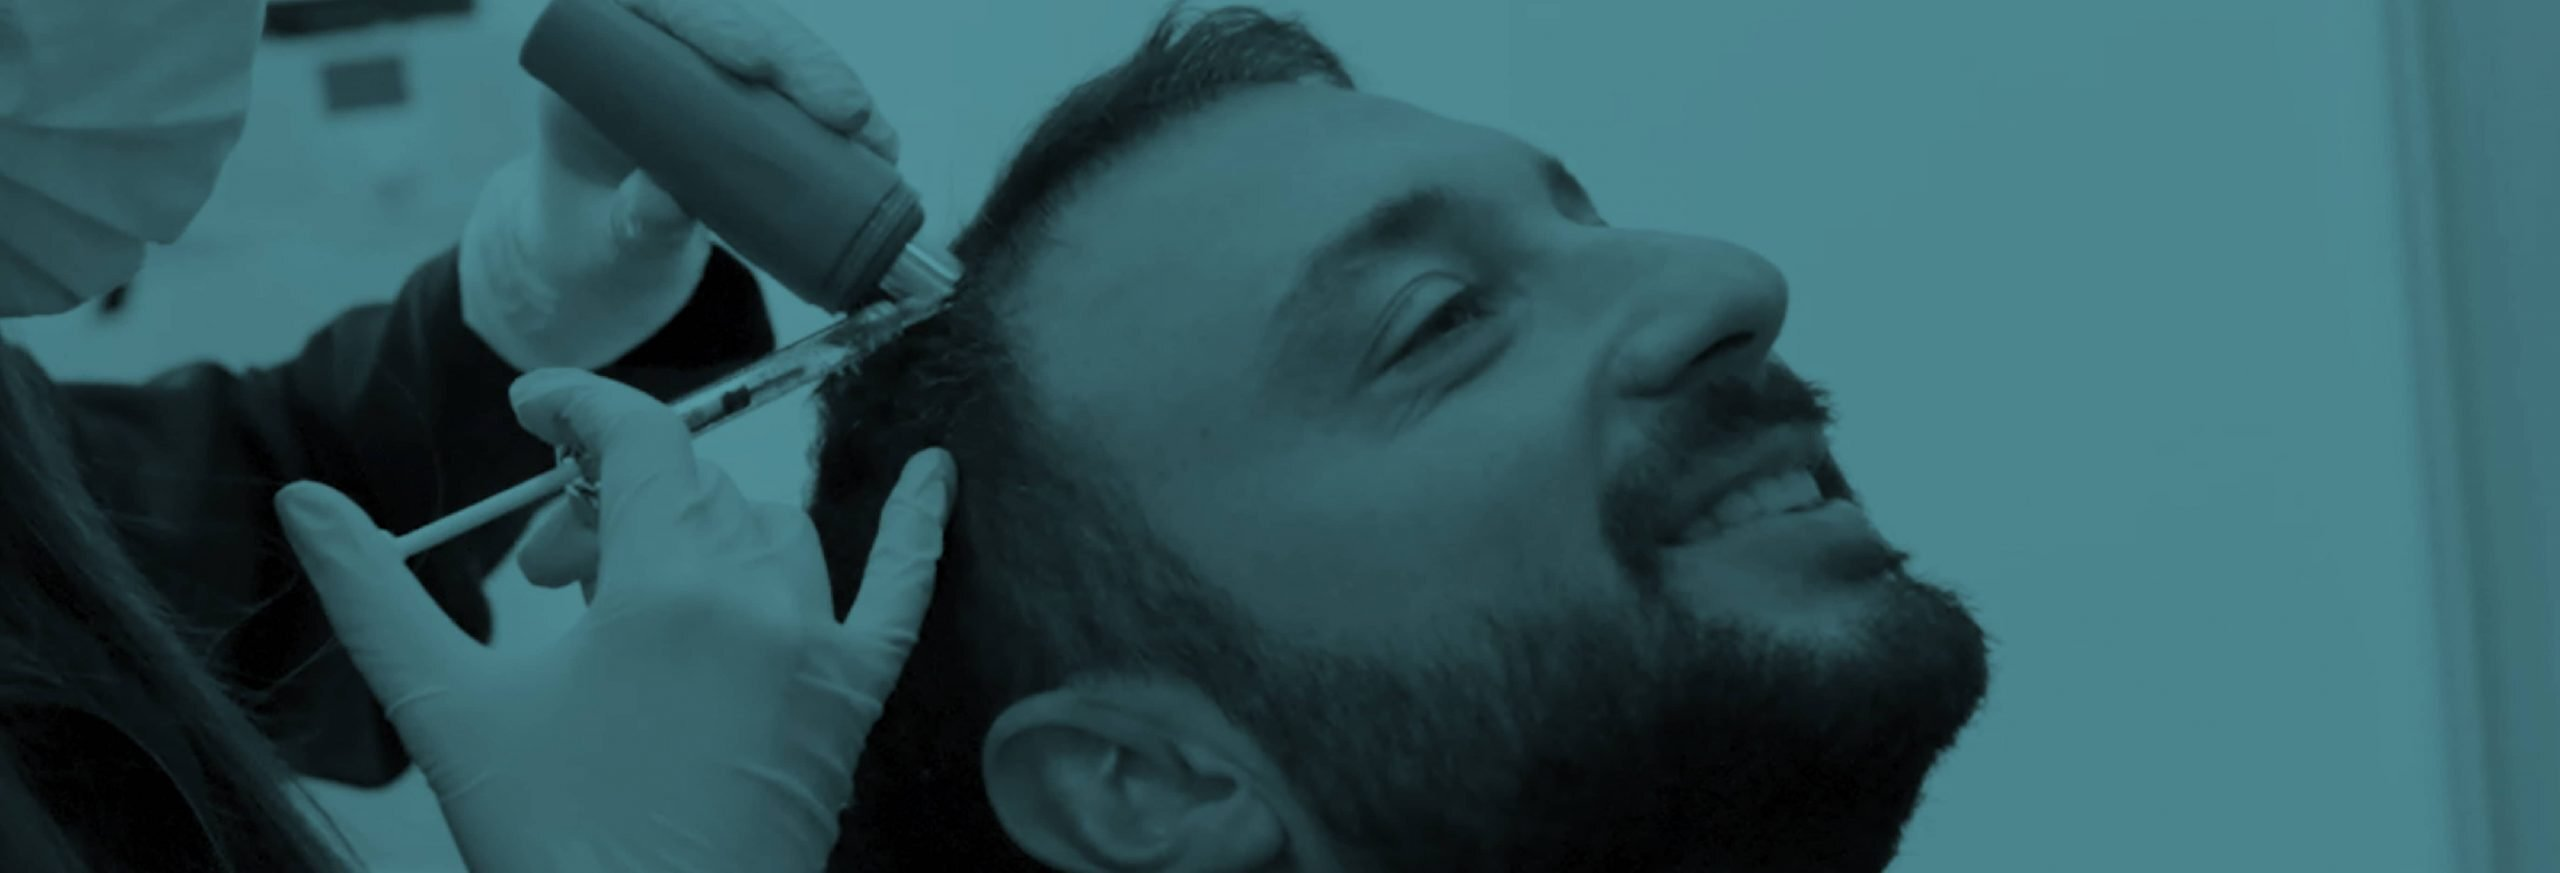 Mesotherapy Treatment for Hair Loss